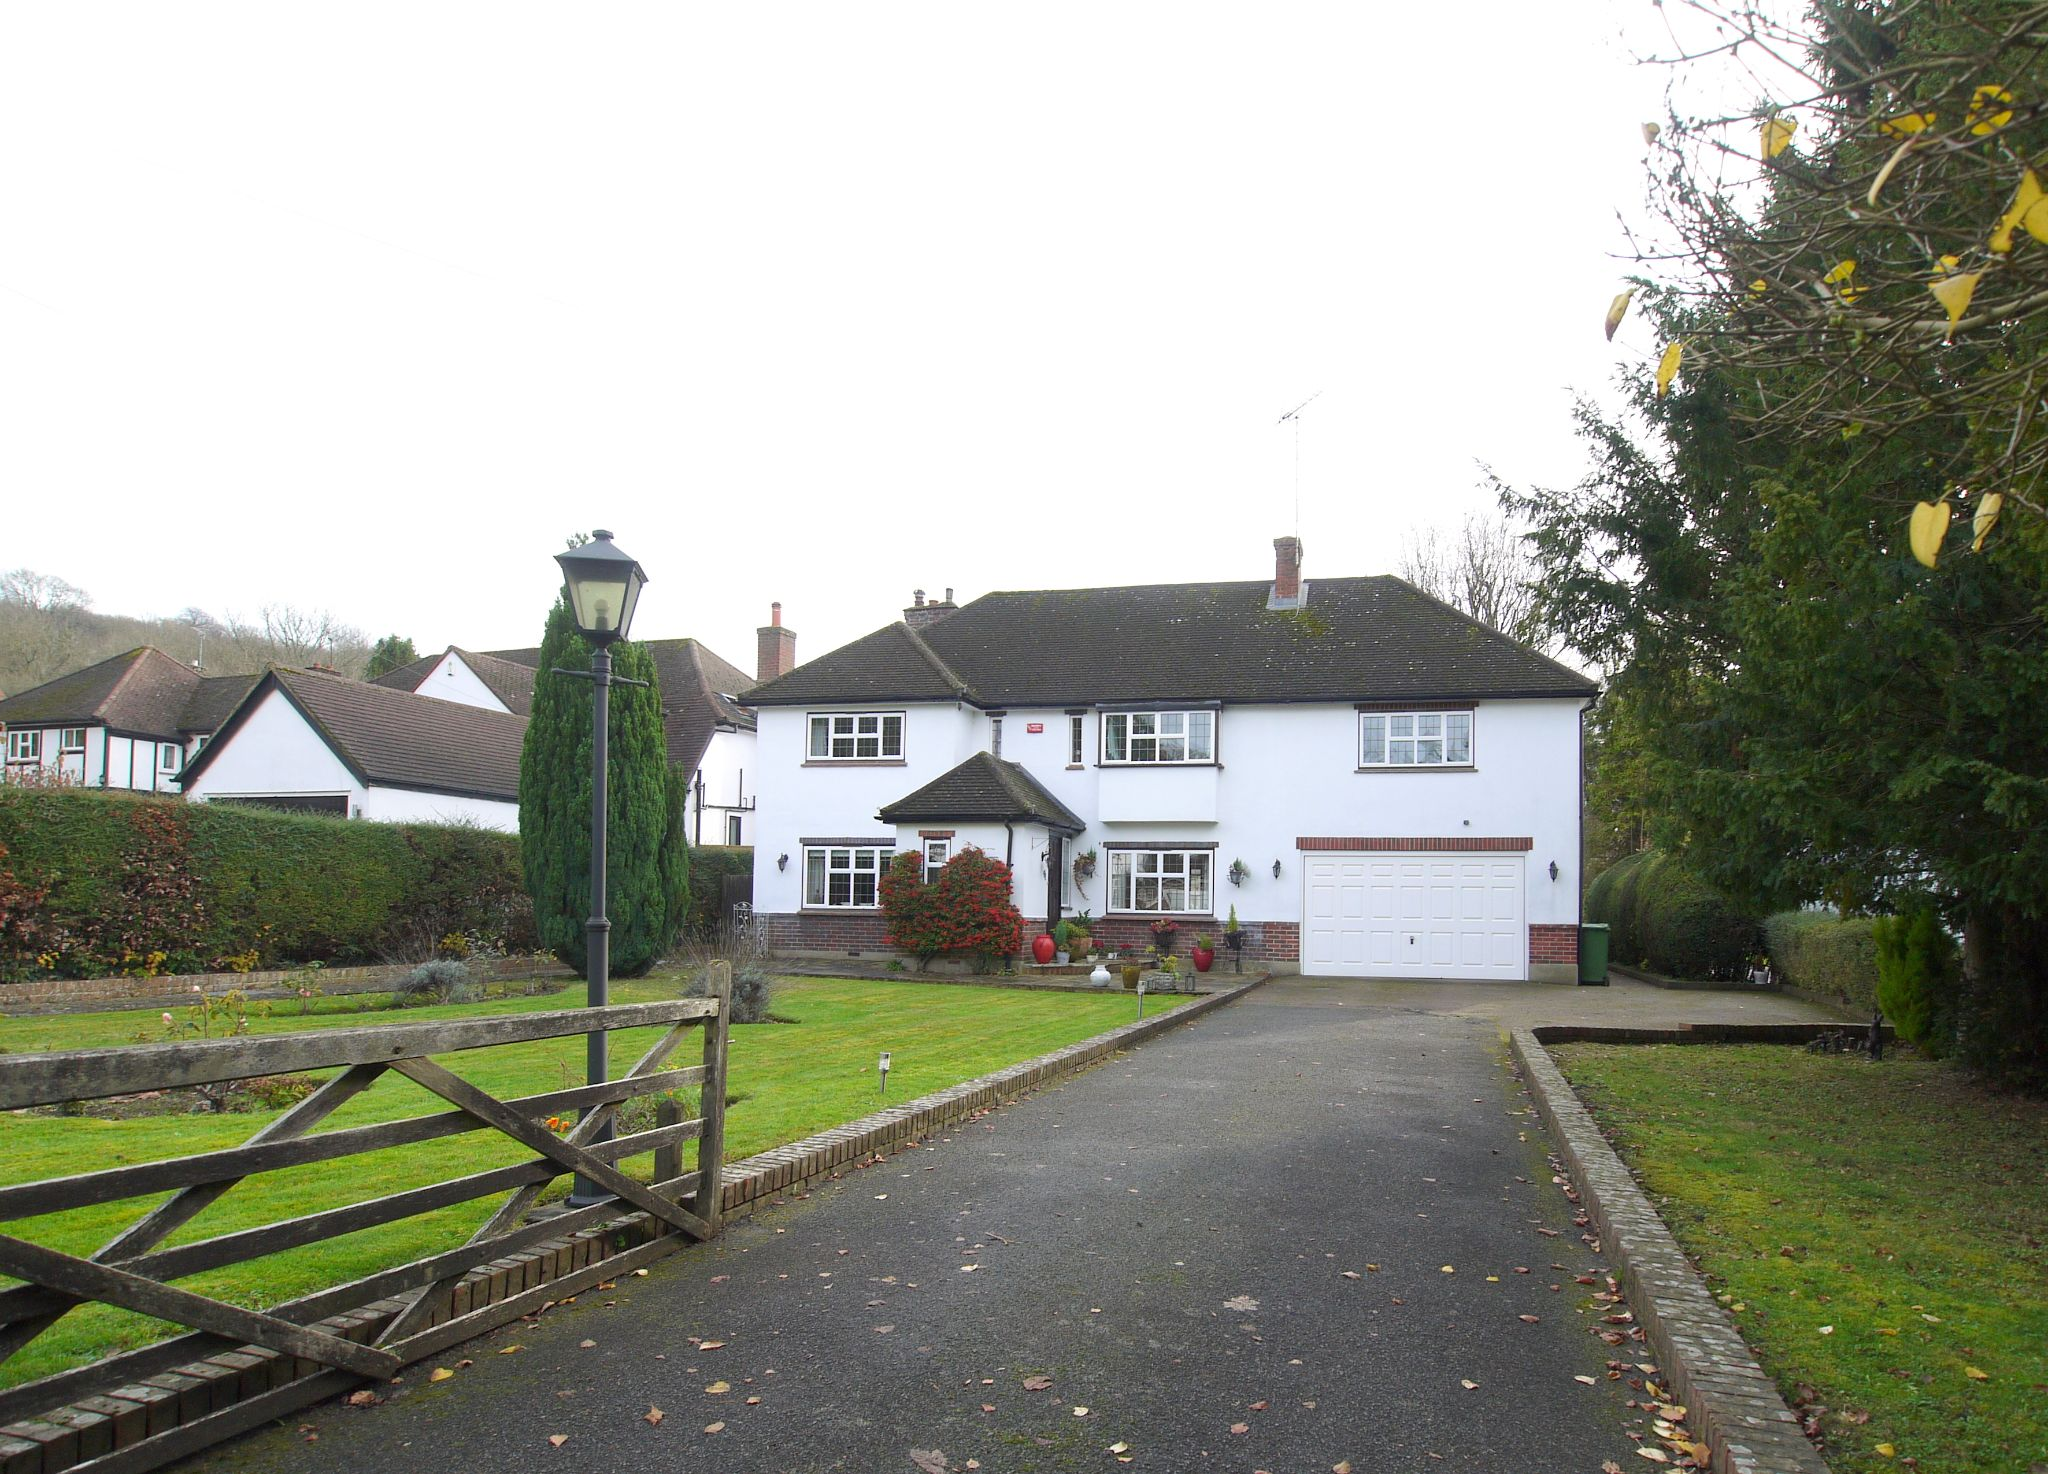 6 bedroom detached house For Sale in Sevenoaks - Photograph 1